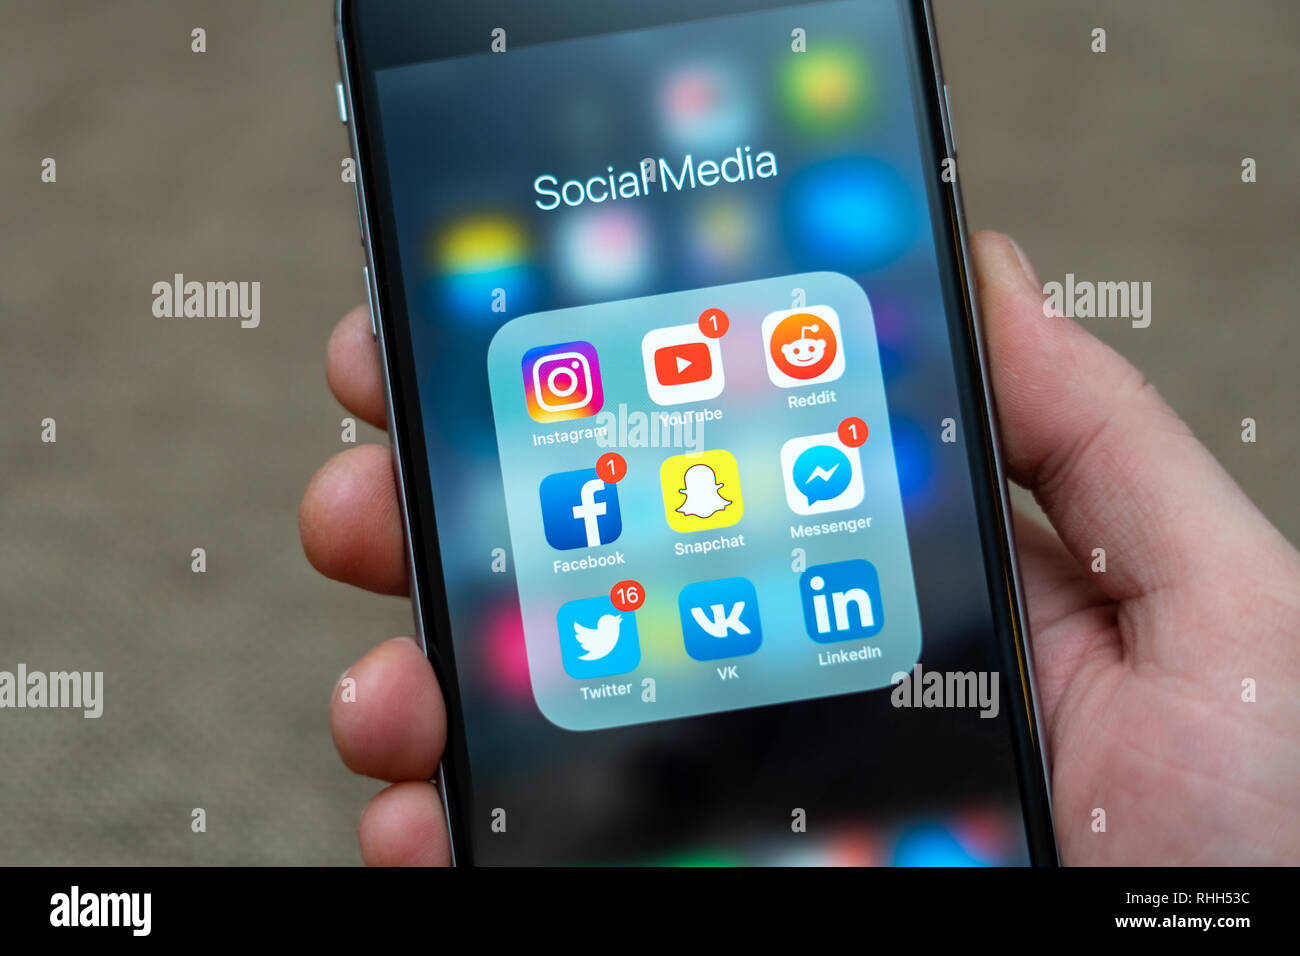 Social Media Icons Phone Stock Photos & Social Media Icons Phone